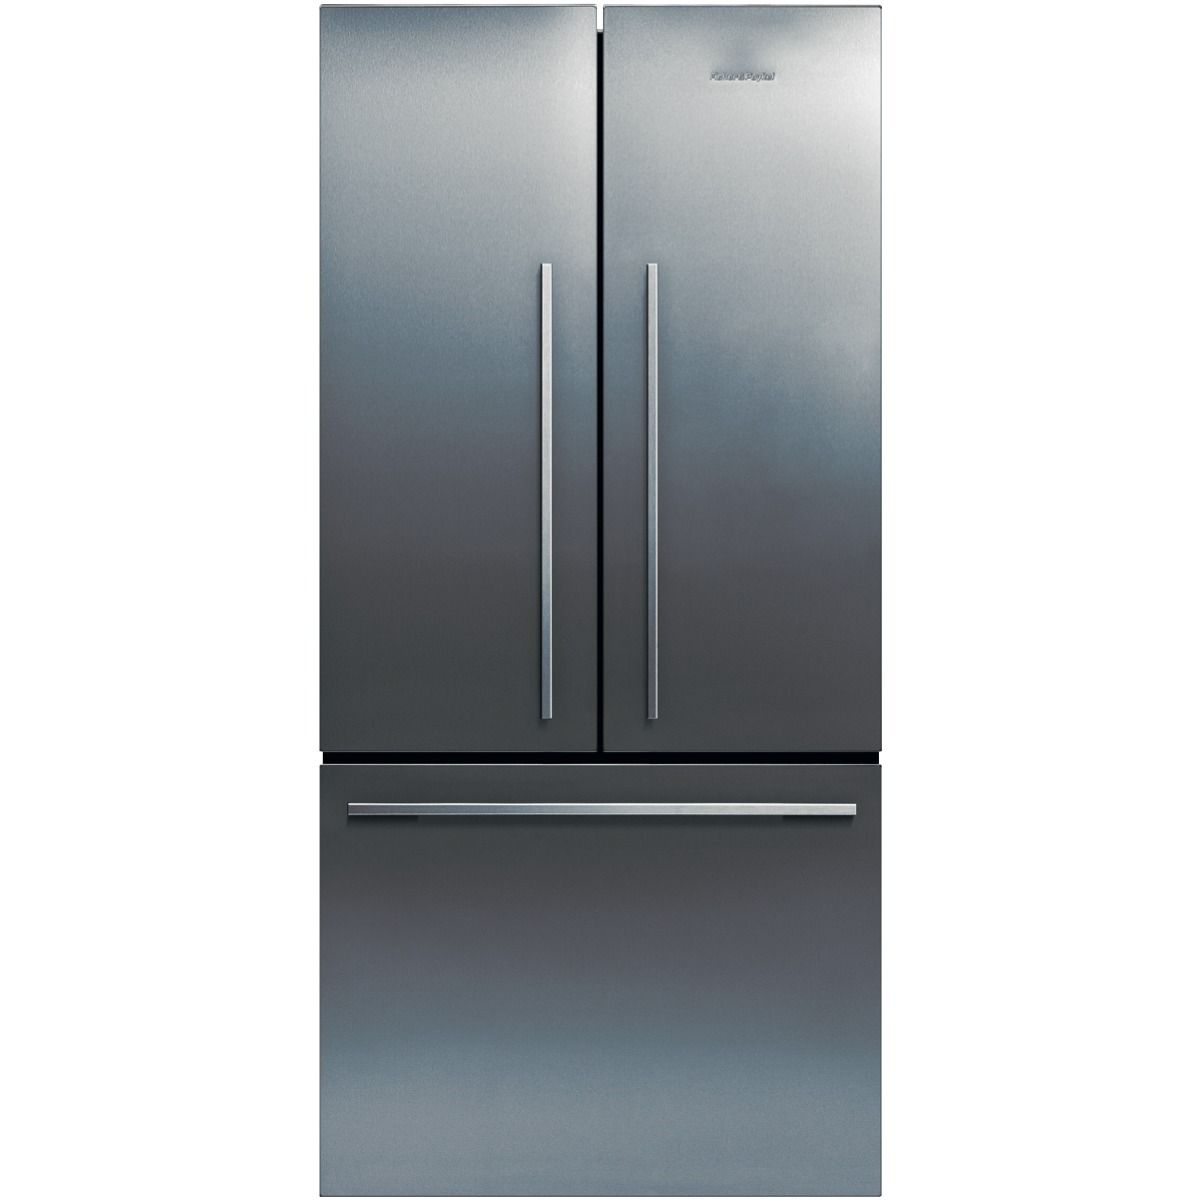 Fisher Paykel Rf522adx5 519l French Door Refrigerator At The Good